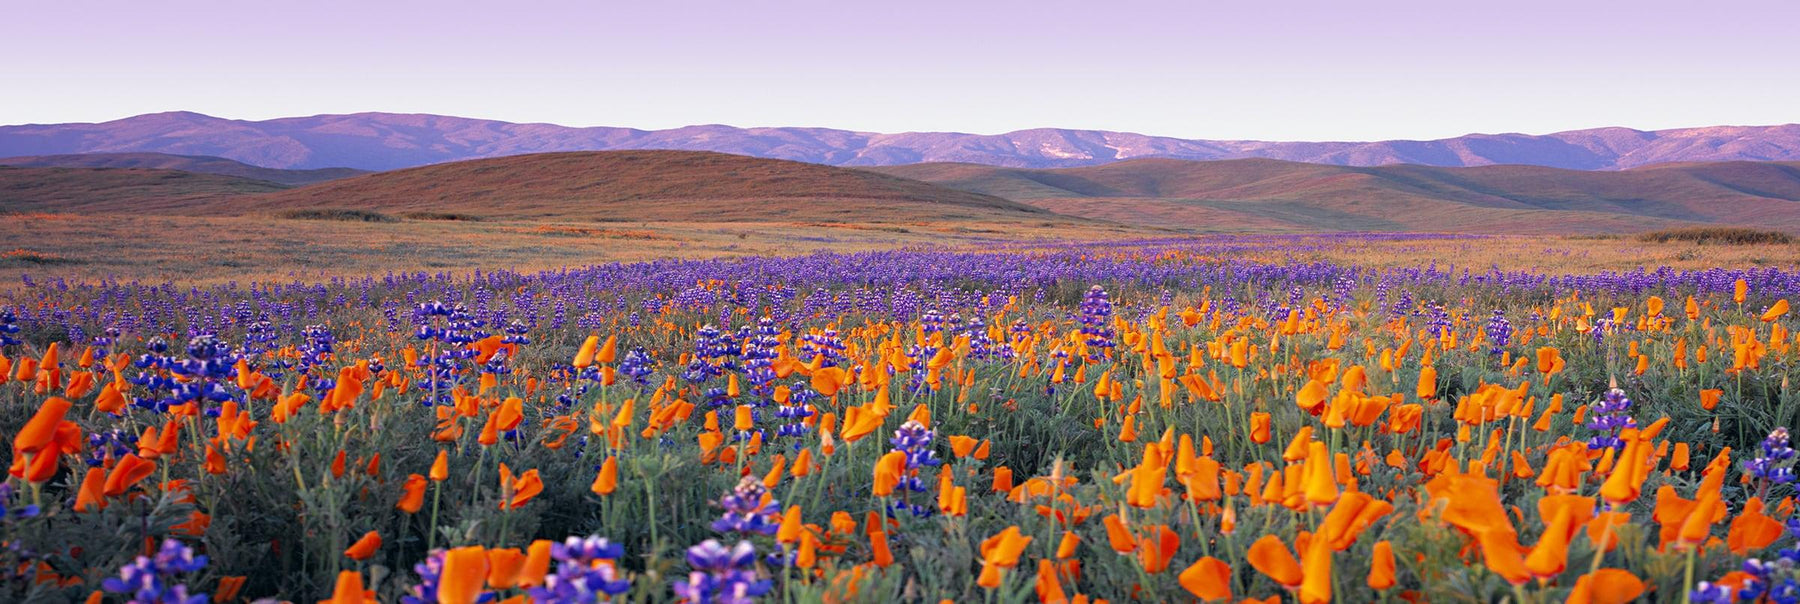 Orange and purple poppy fields along the rolling hills of Carrizo Plain National Park California